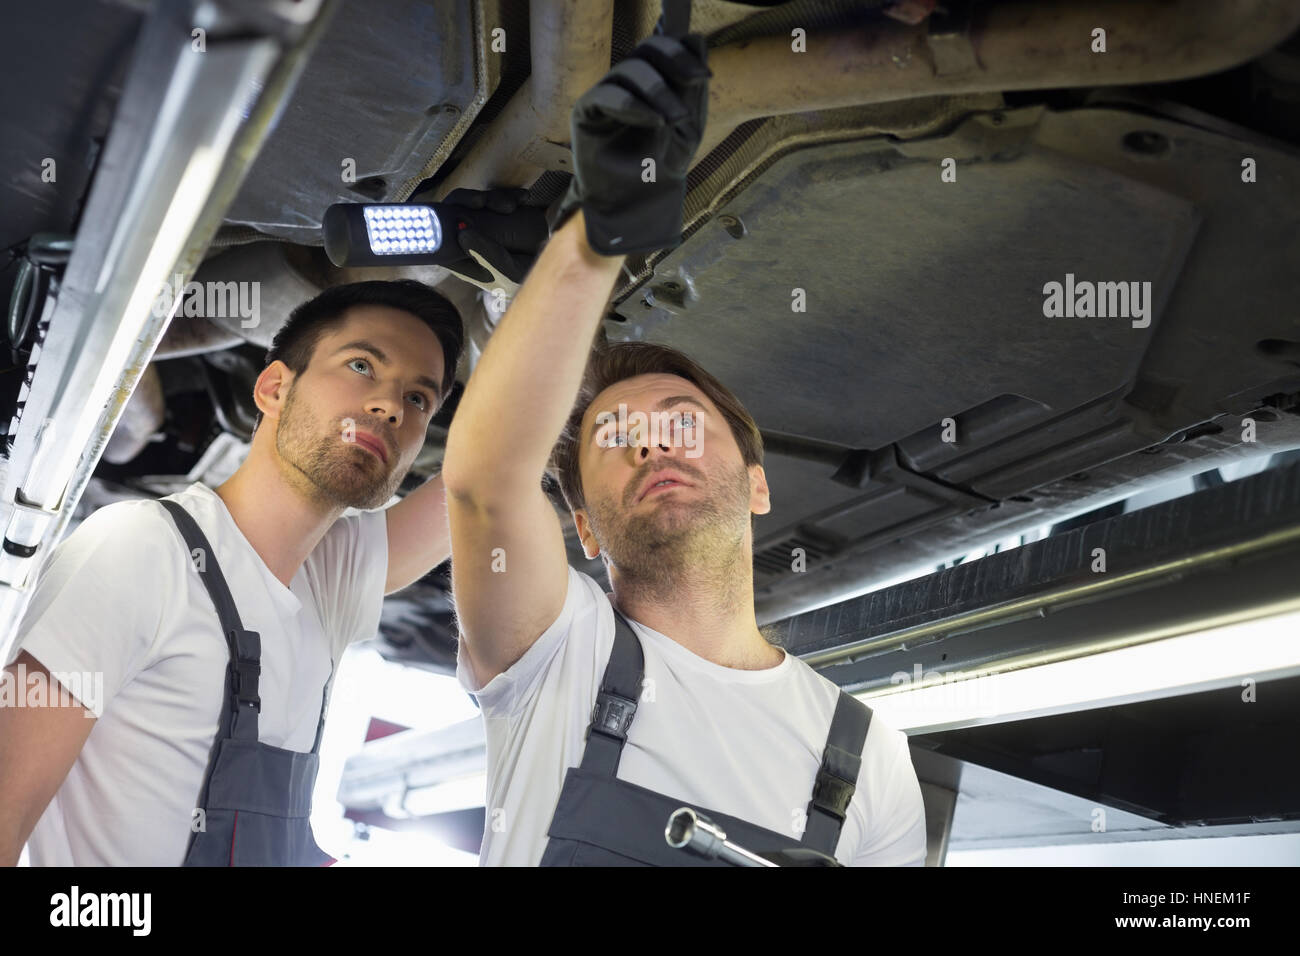 Male mechanics examining car in workshop - Stock Image